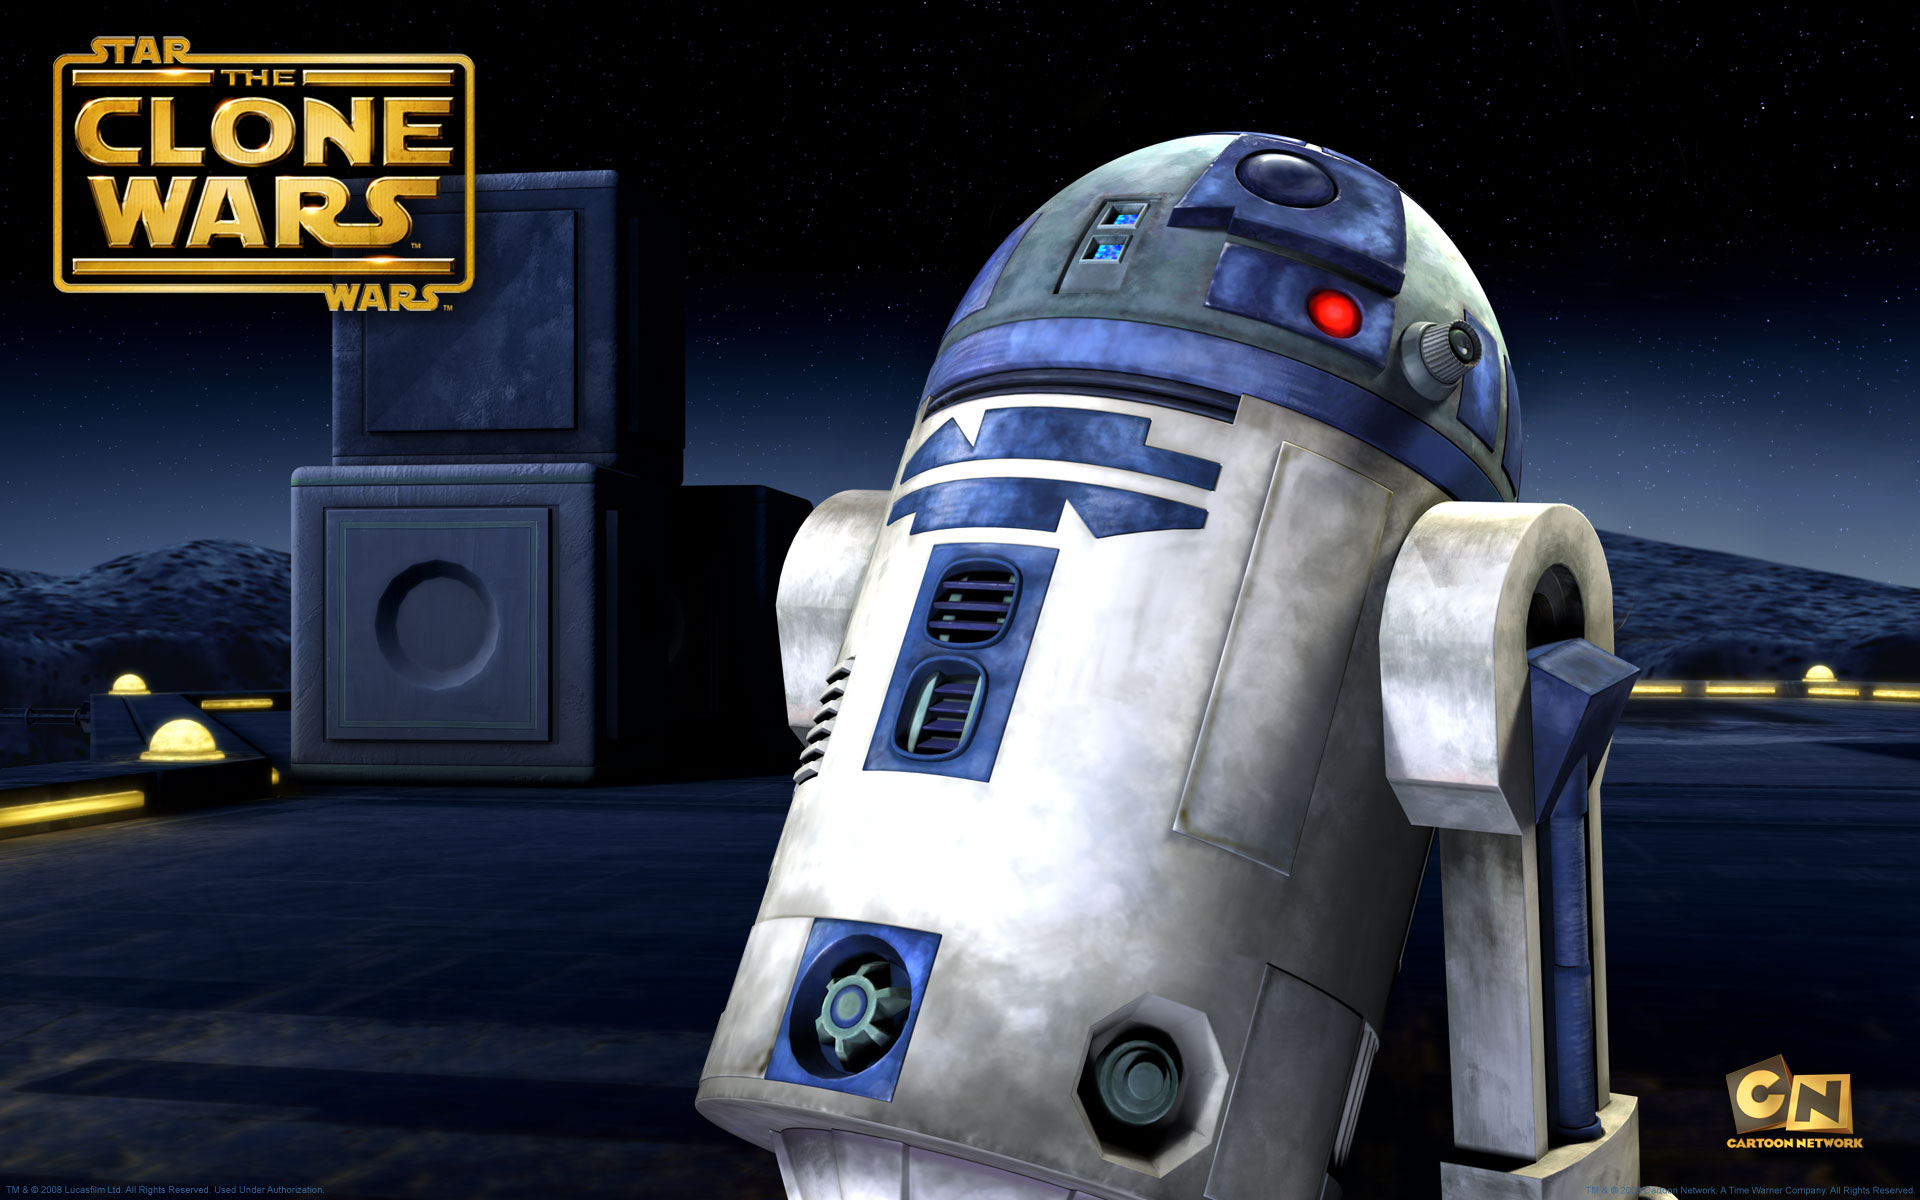 Desktop Wallpaper Picture Of The Droid R2d2 From Clone Wars Series 1920x1200